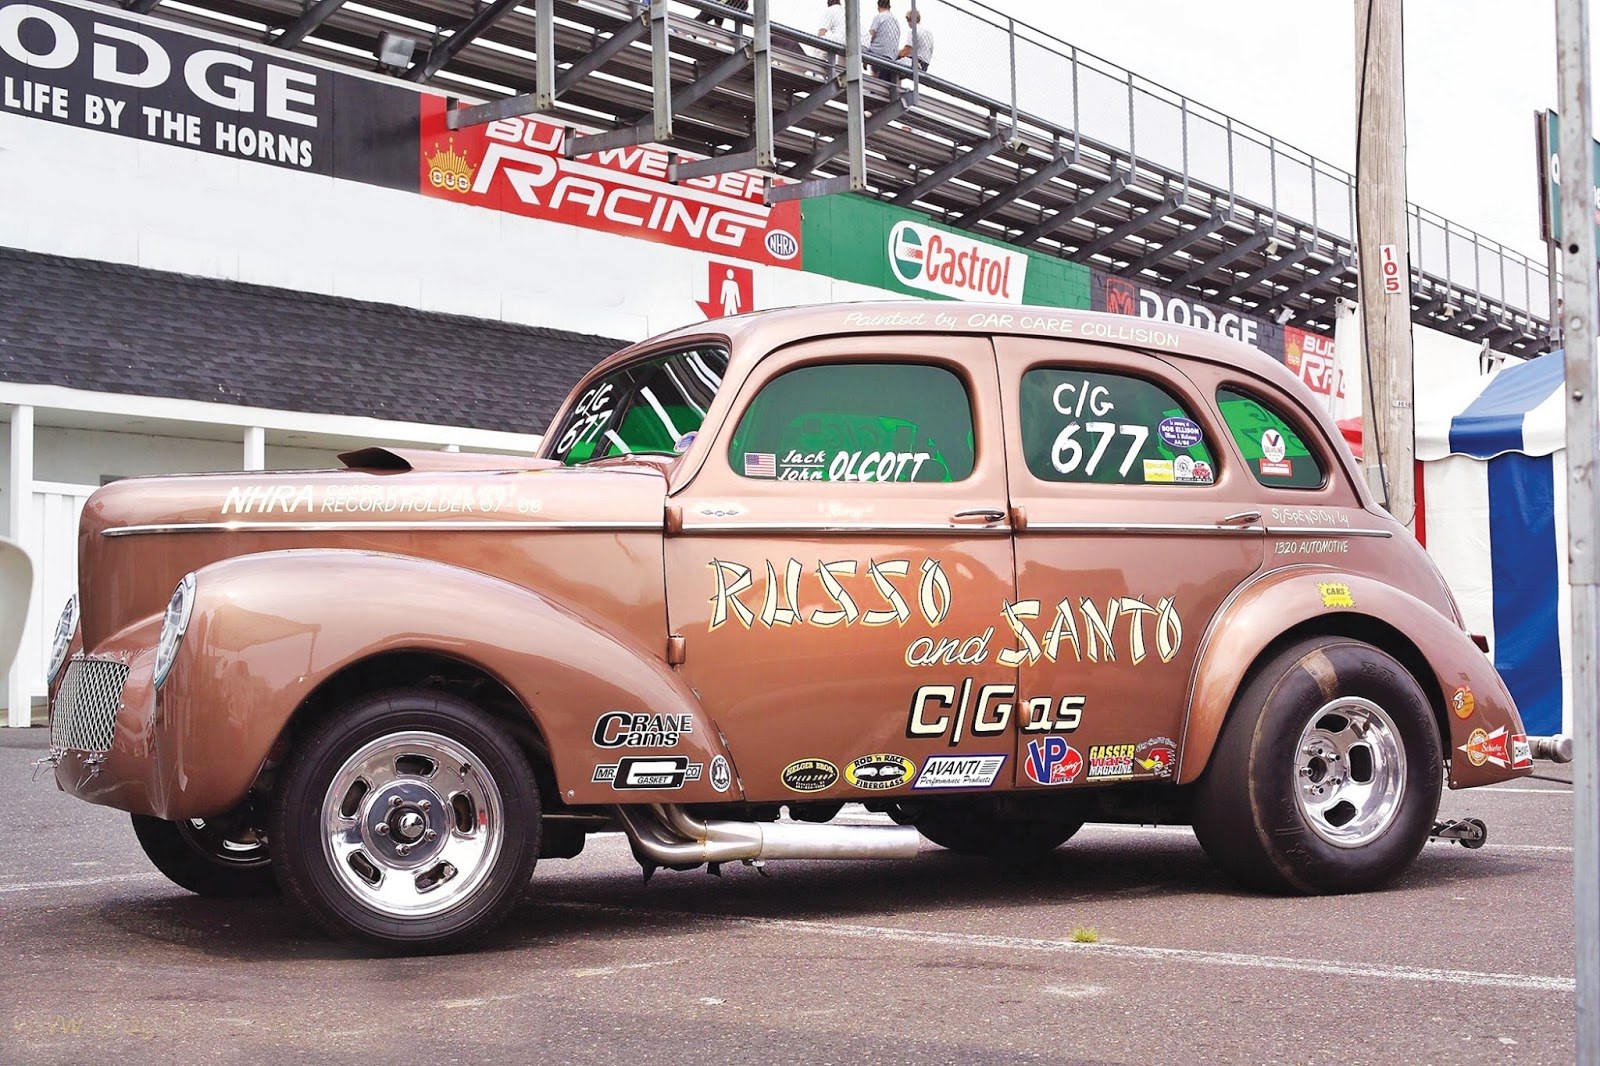 SWAP MEET: FOR SALE: '41 WILLYS GASSER